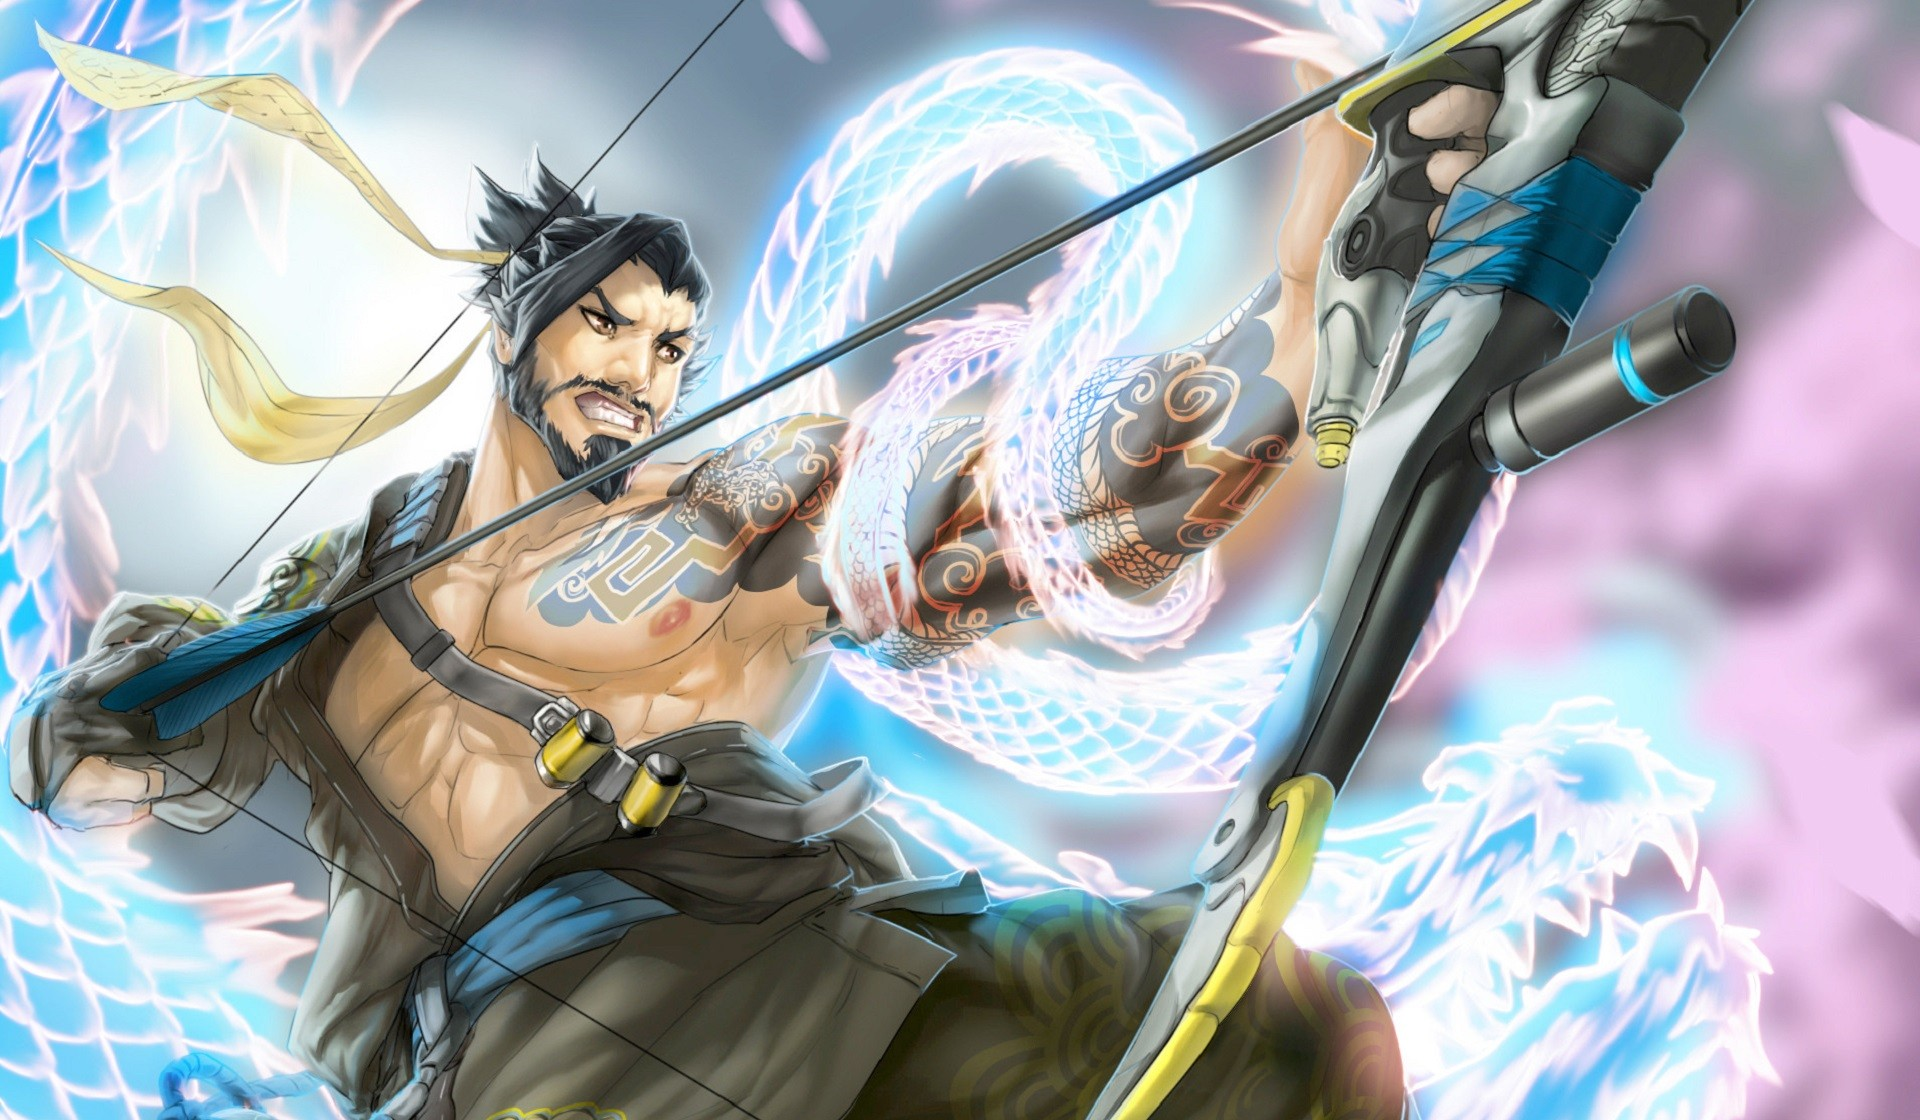 Overwatch Hanzo Wallpaper ·① Download Free Amazing